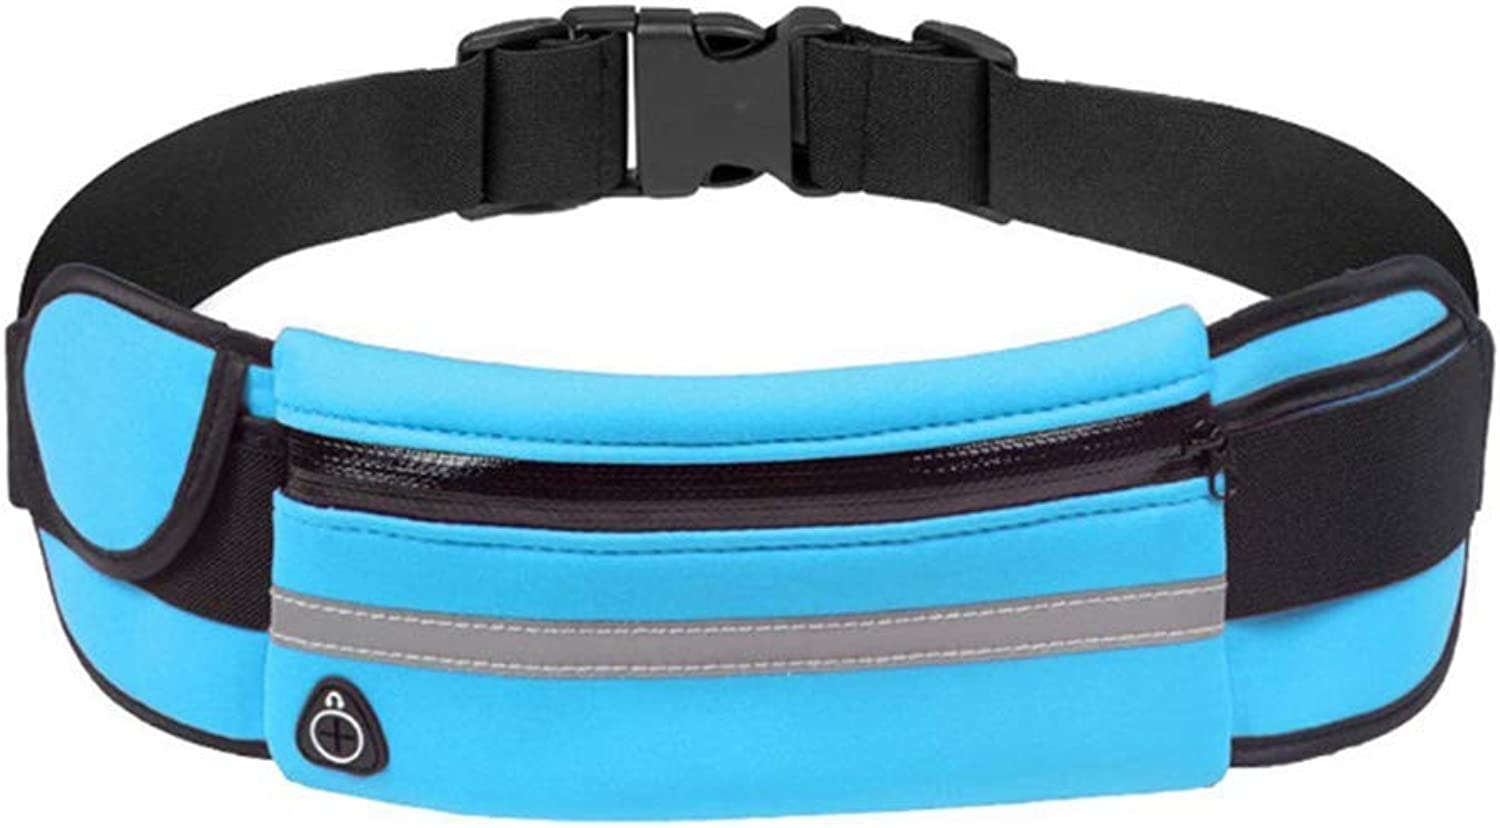 Sport Exercise Hiking Waist Bag Fanny Pack, Adjustable Runners Belt with Water Bottle Holder Unisex for Workouts Cycling Travelling Outdoors,blueee